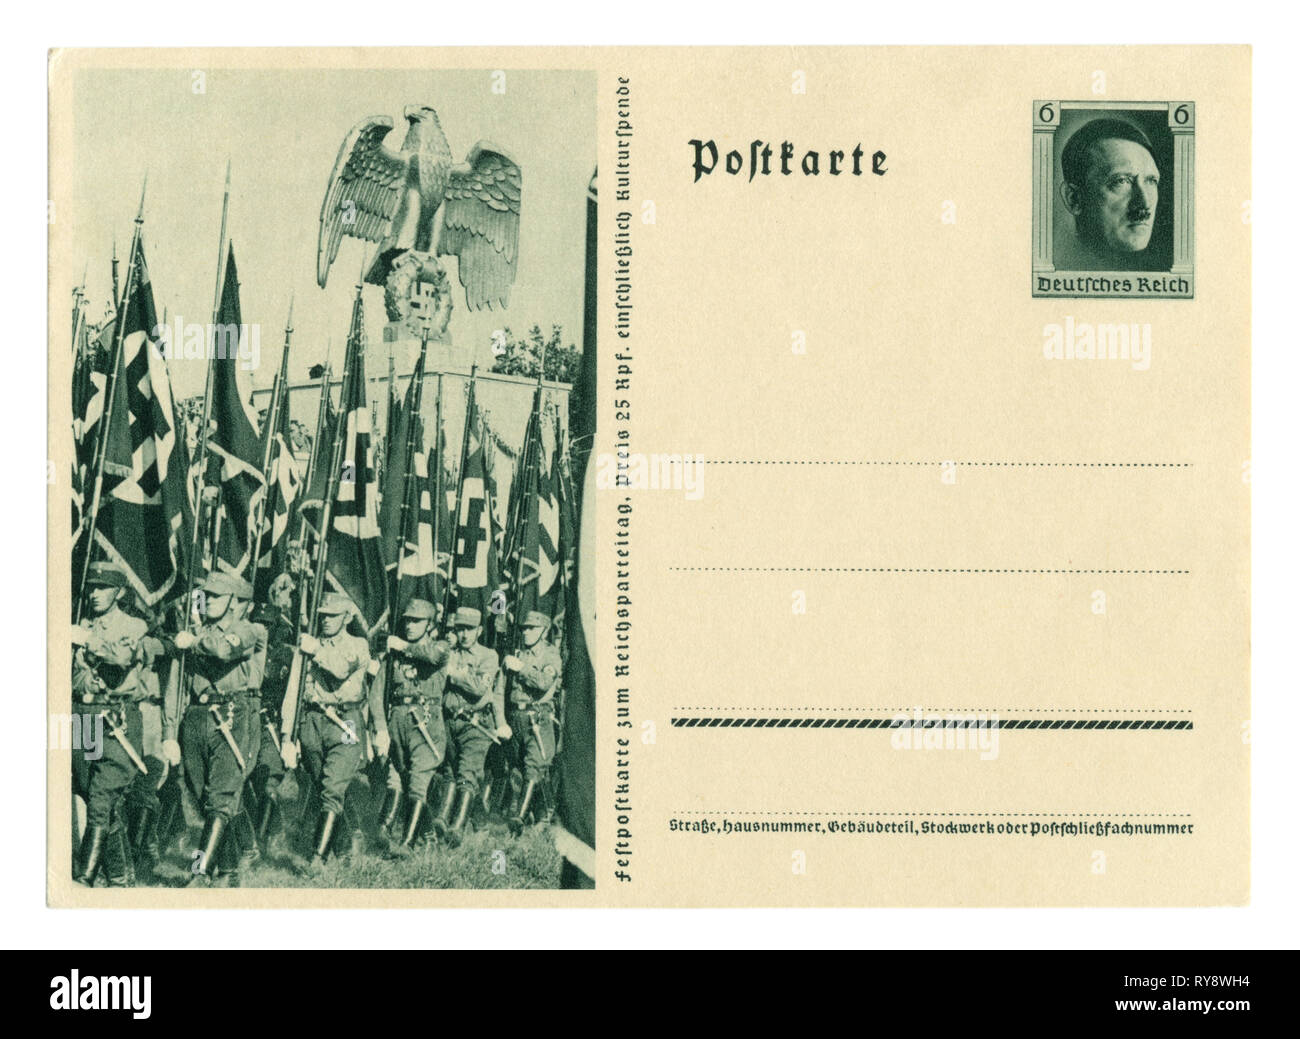 German historical postal card: The 9th party Congress of the NSDAP in Nuremberg in 1937, Sa assault troops on the March with flags. Germany - Stock Image